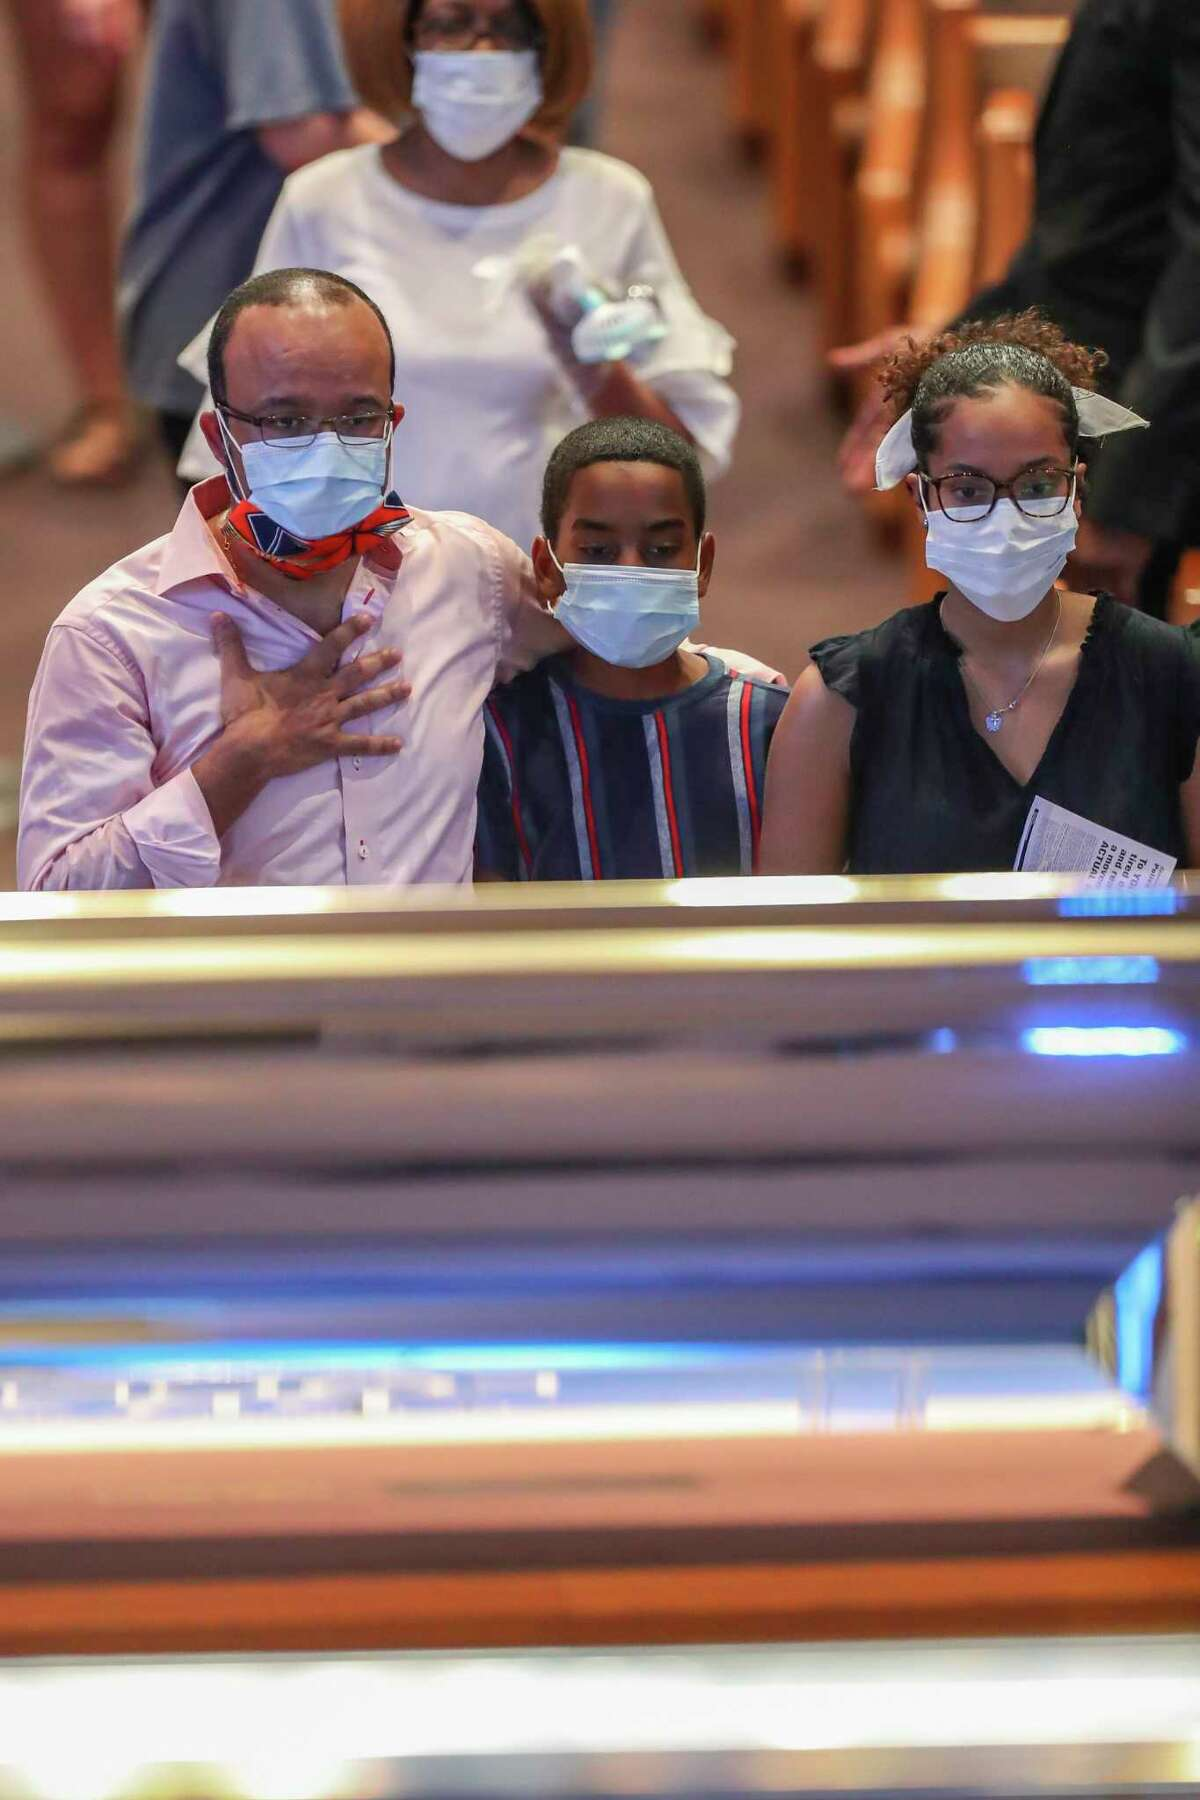 Mourners view the casket of George Floyd during a public visitation Monday, June 8, 2020, at The Fountain of Praise church in Houston. Floyd died after being restrained by Minneapolis Police officers on May 25.